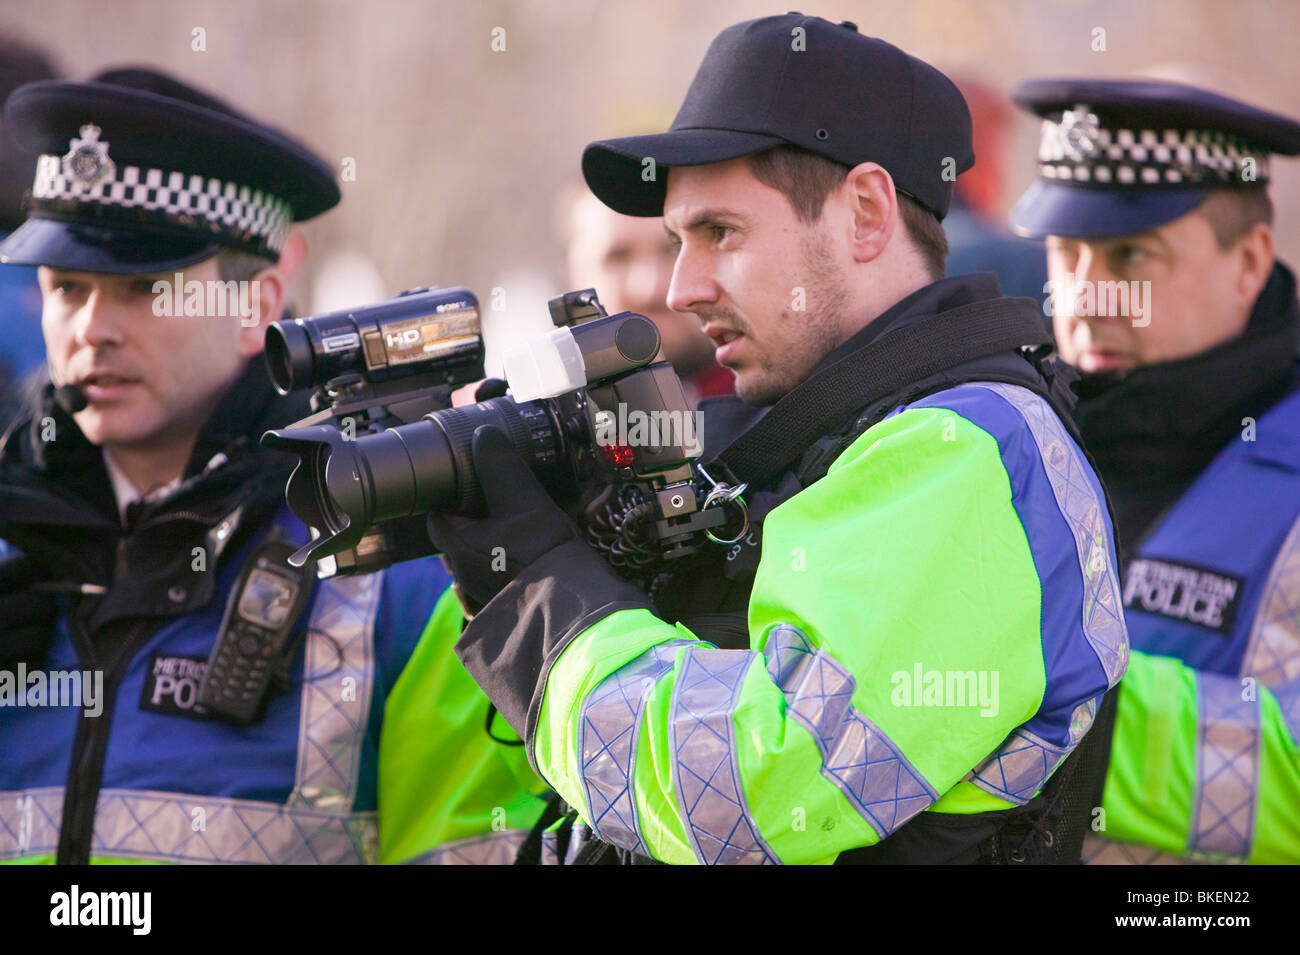 Police photographer photographing protestors at a climate change rally in London December 2008 - Stock Image